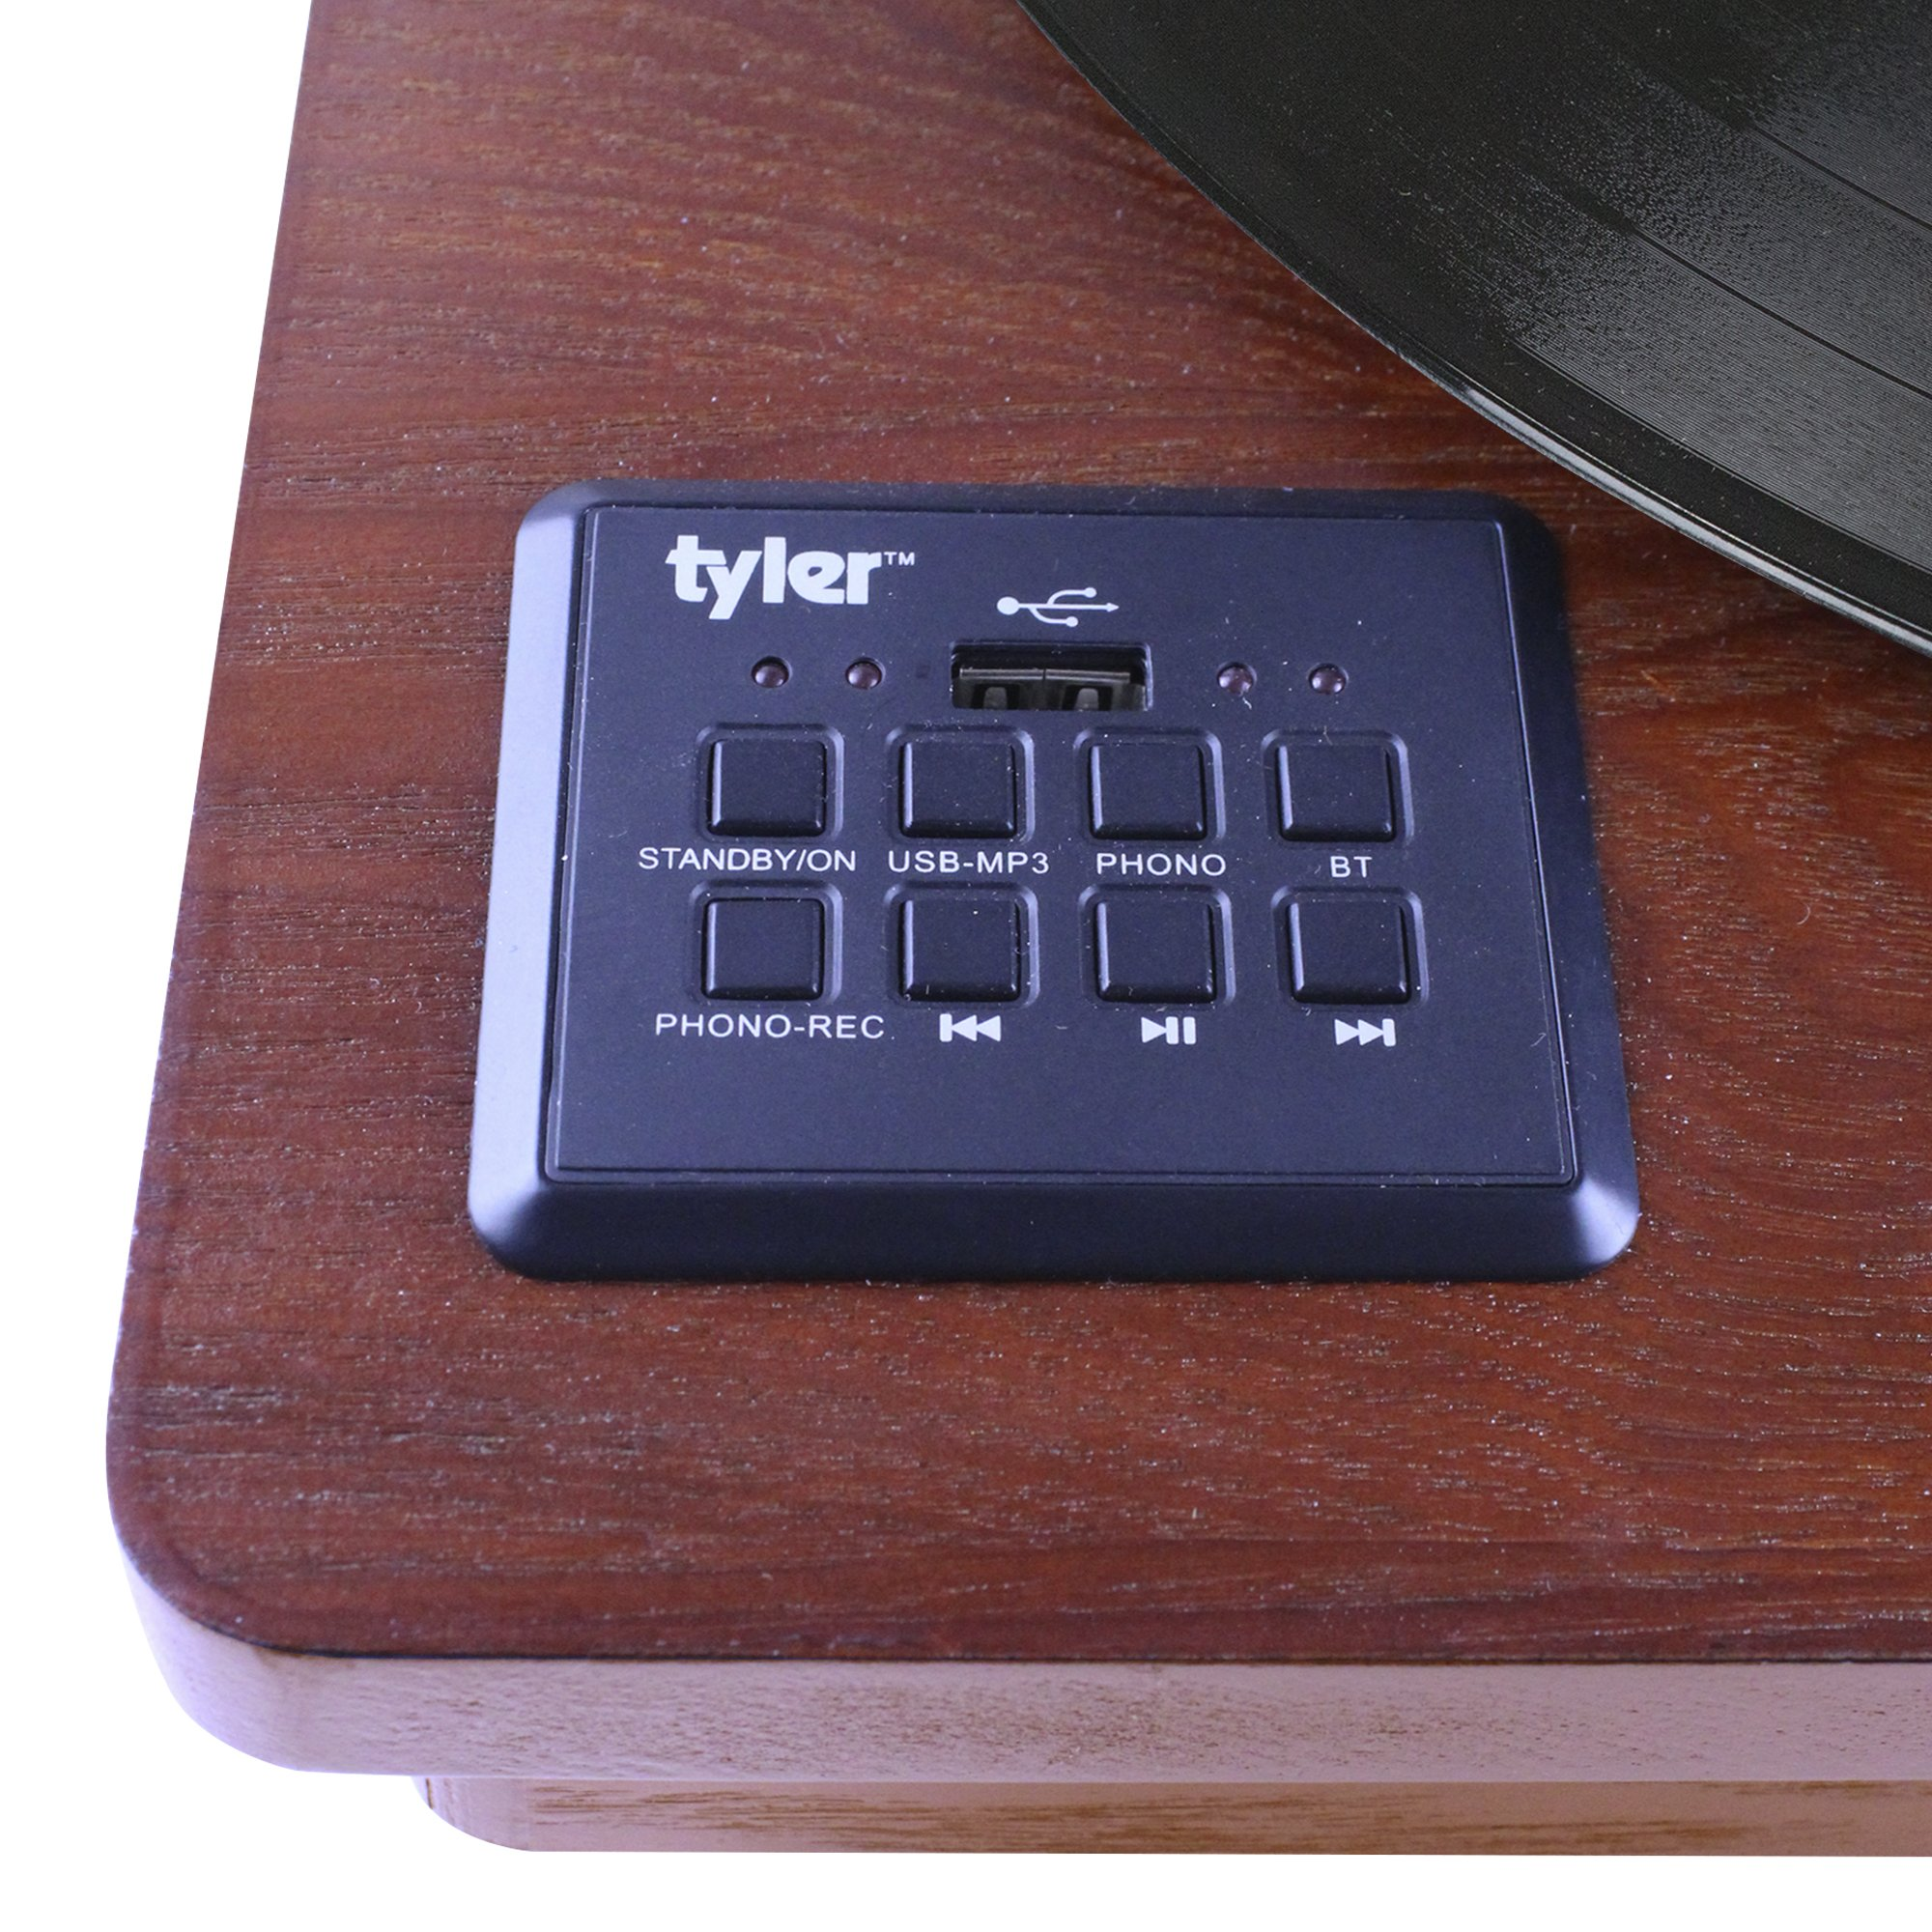 Tyler TTT603-MH Mahogany Record Player Stereo System with Built-in Speakers, MP3 Player and USB Recording, Bluetooth, Headphone & Aux Input, RCA Line-Out